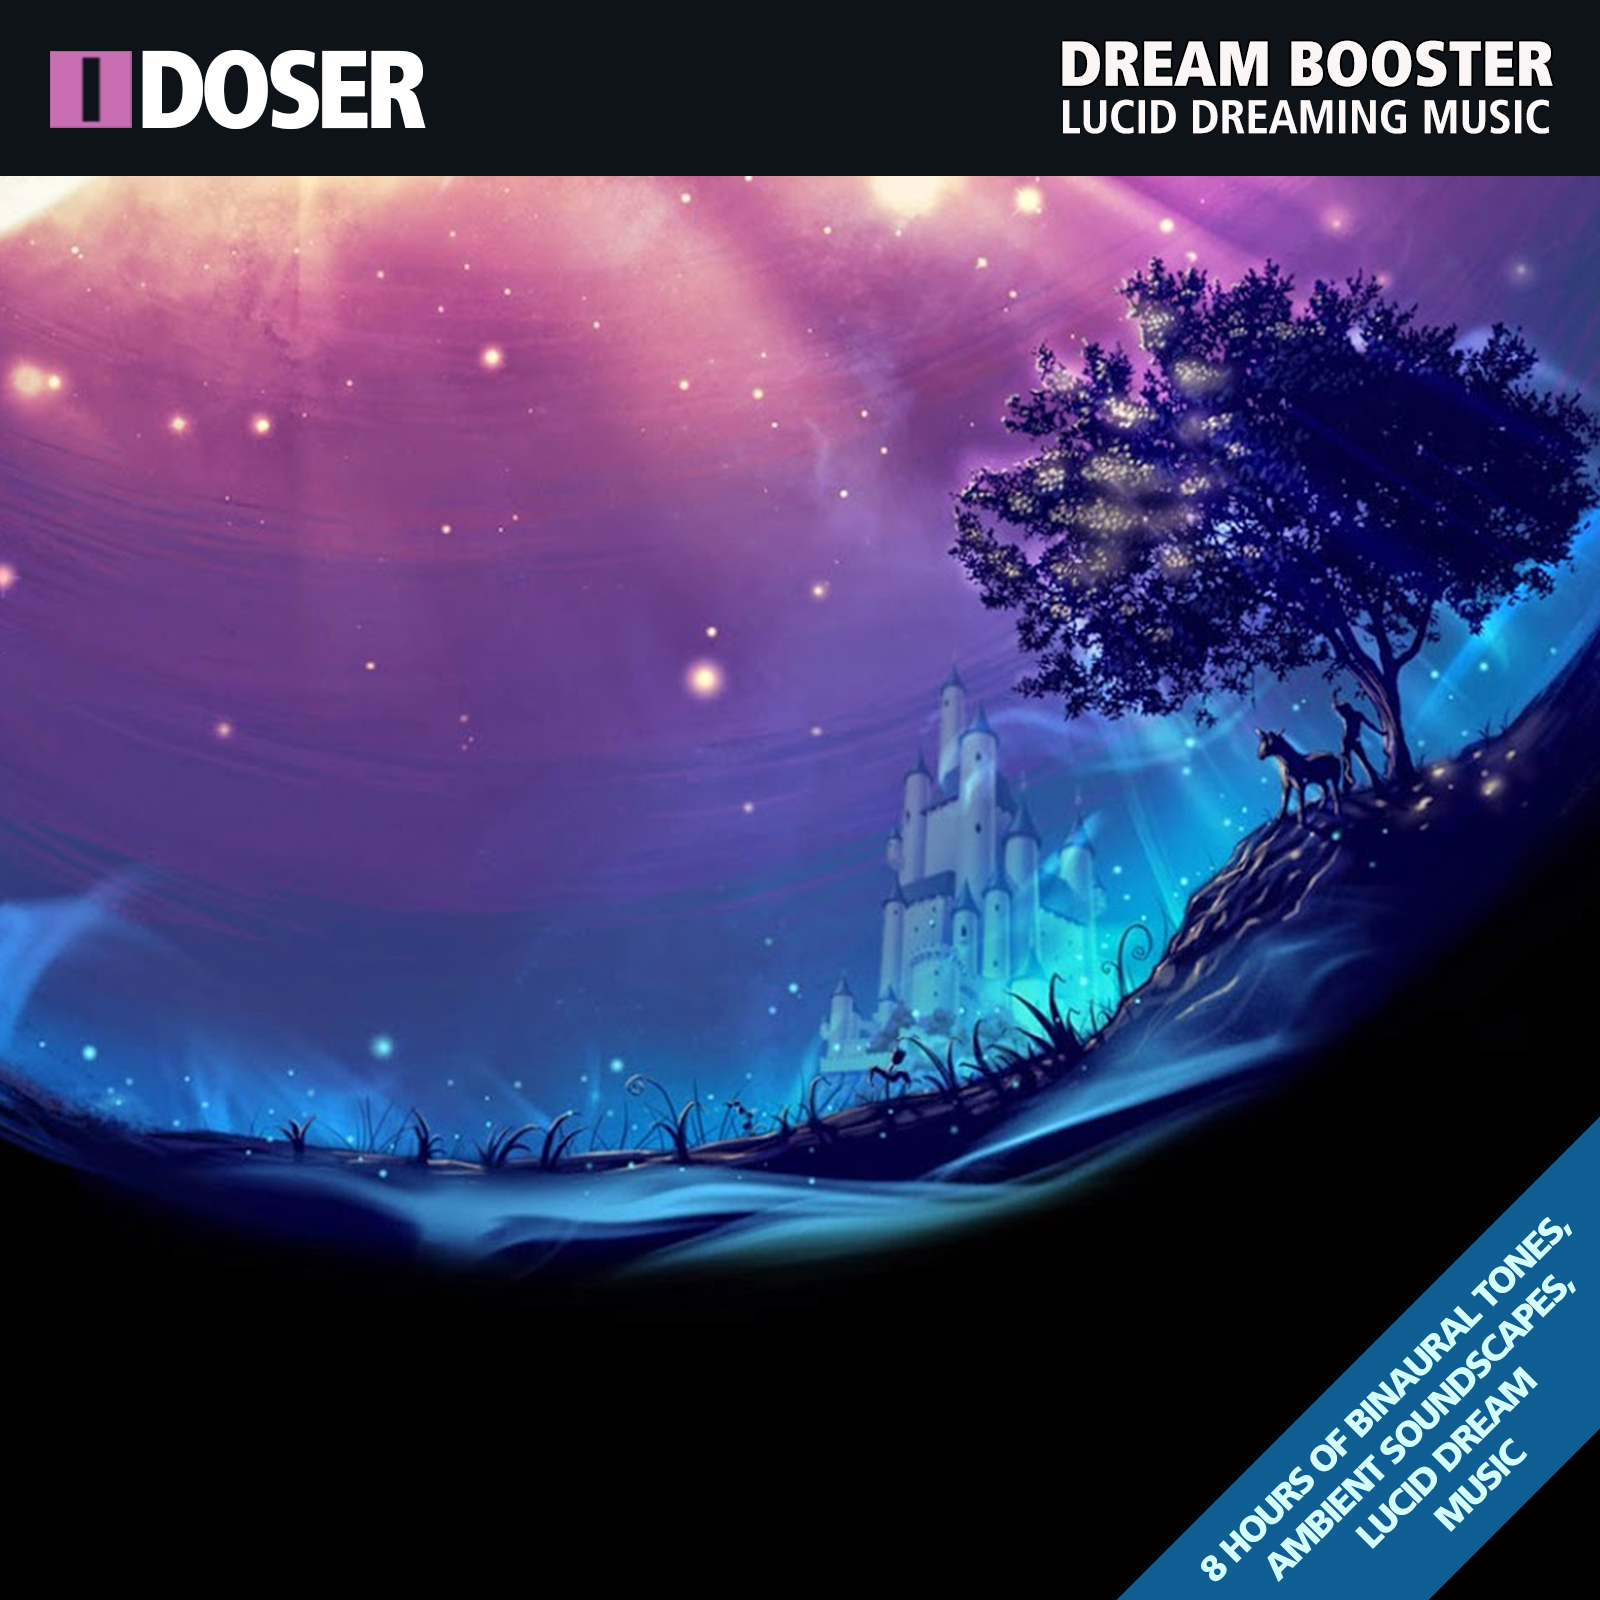 Dream Booster